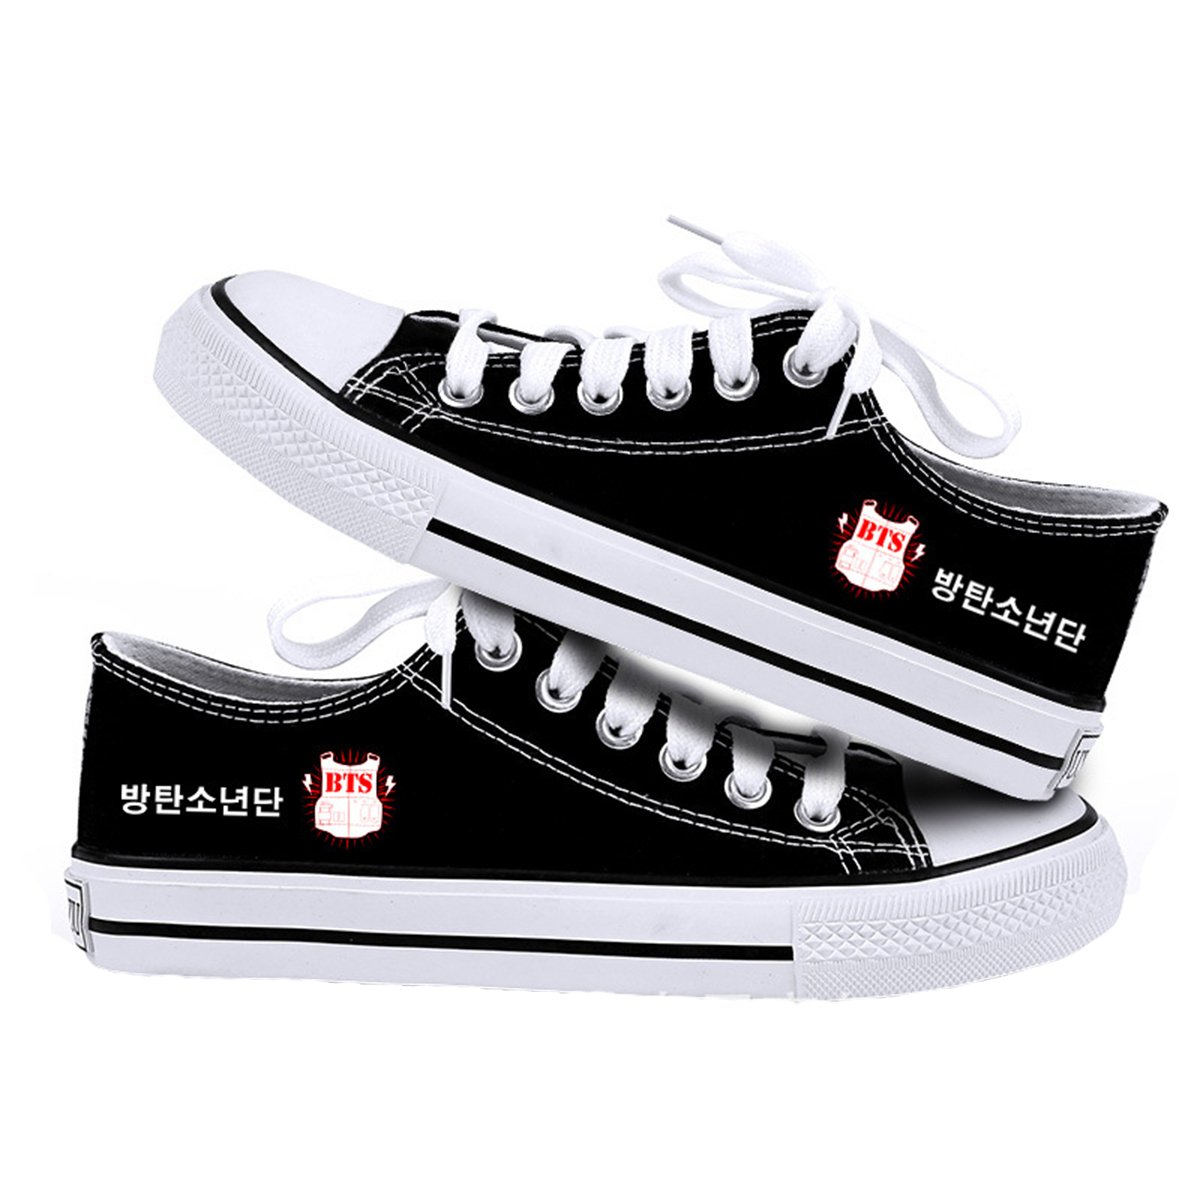 CHAIRAY BTS GOT7 EXO Canvas Shoes Sneakers Fashion Hiphop Style Casual Shoes